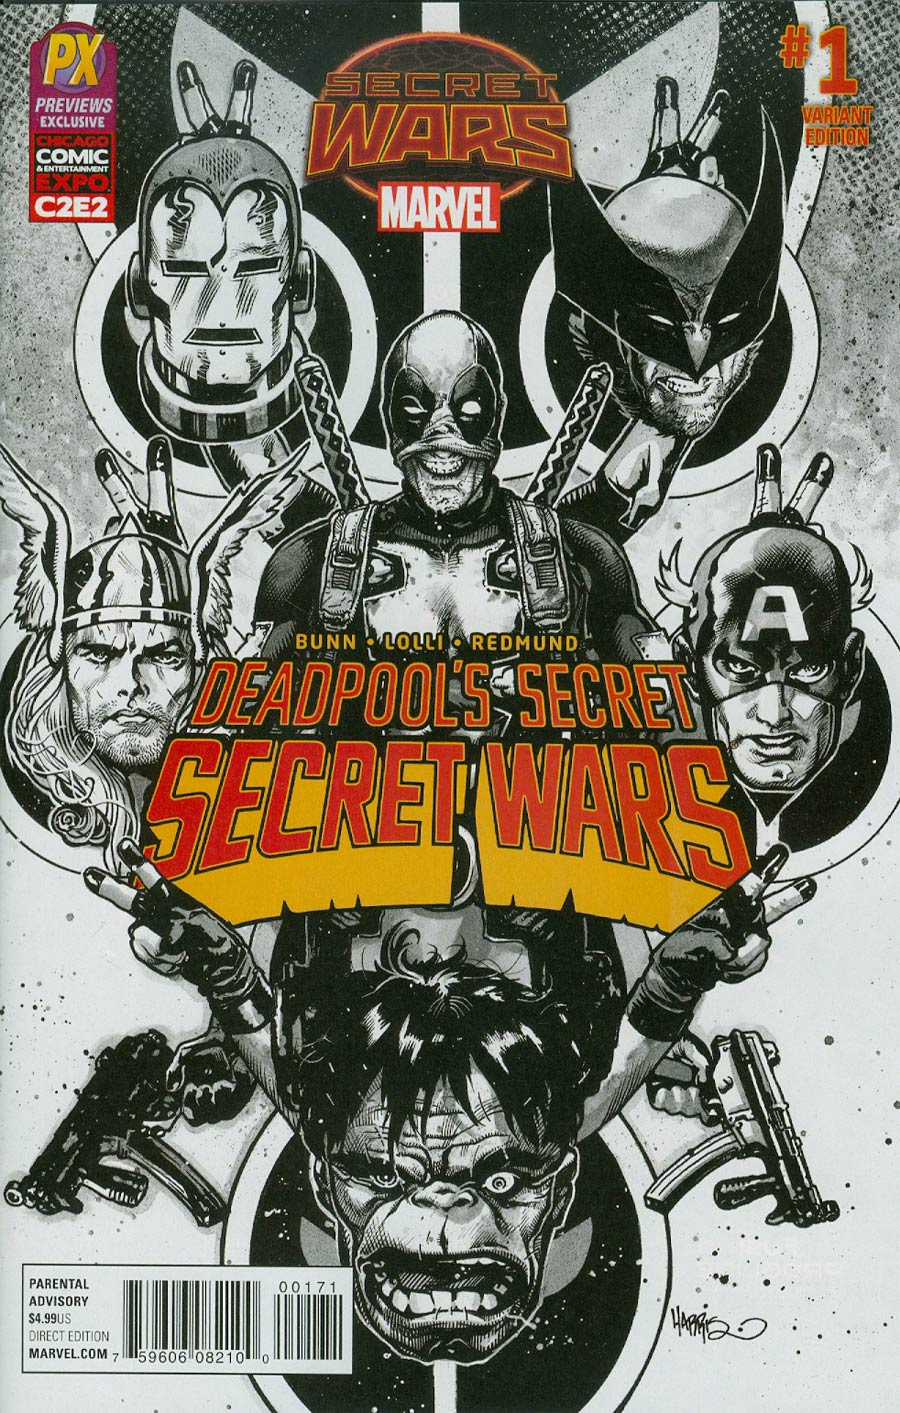 Deadpool's Secret Secret Wars #1 C2E2 Variant